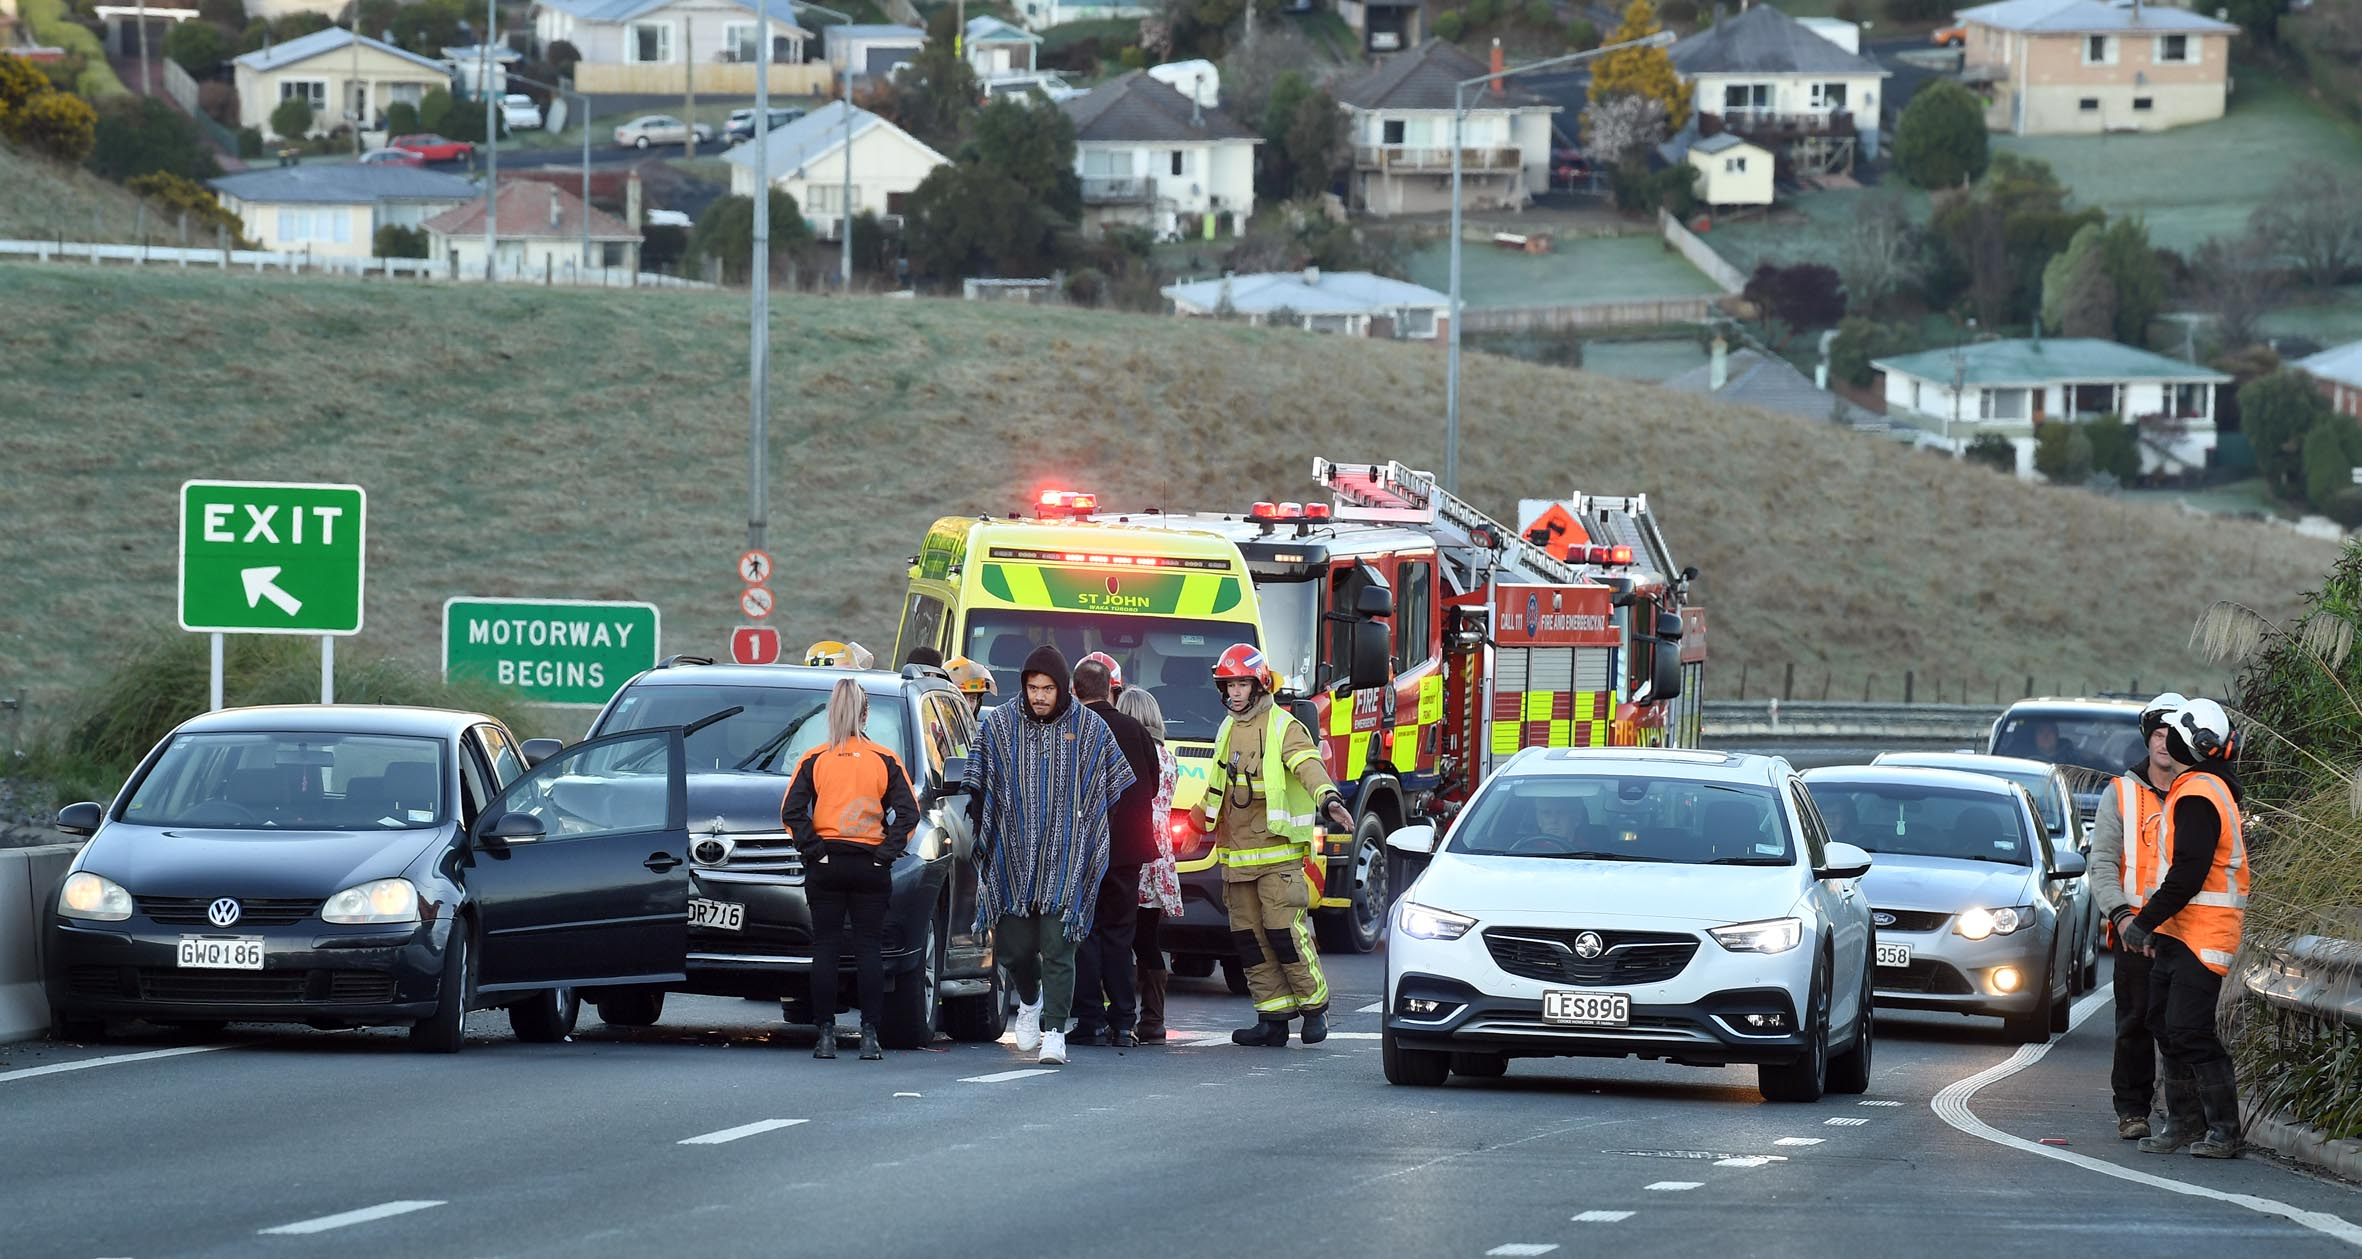 Emergency services were called to the crash about 7.55am. Photo: Stephen Jaquiery